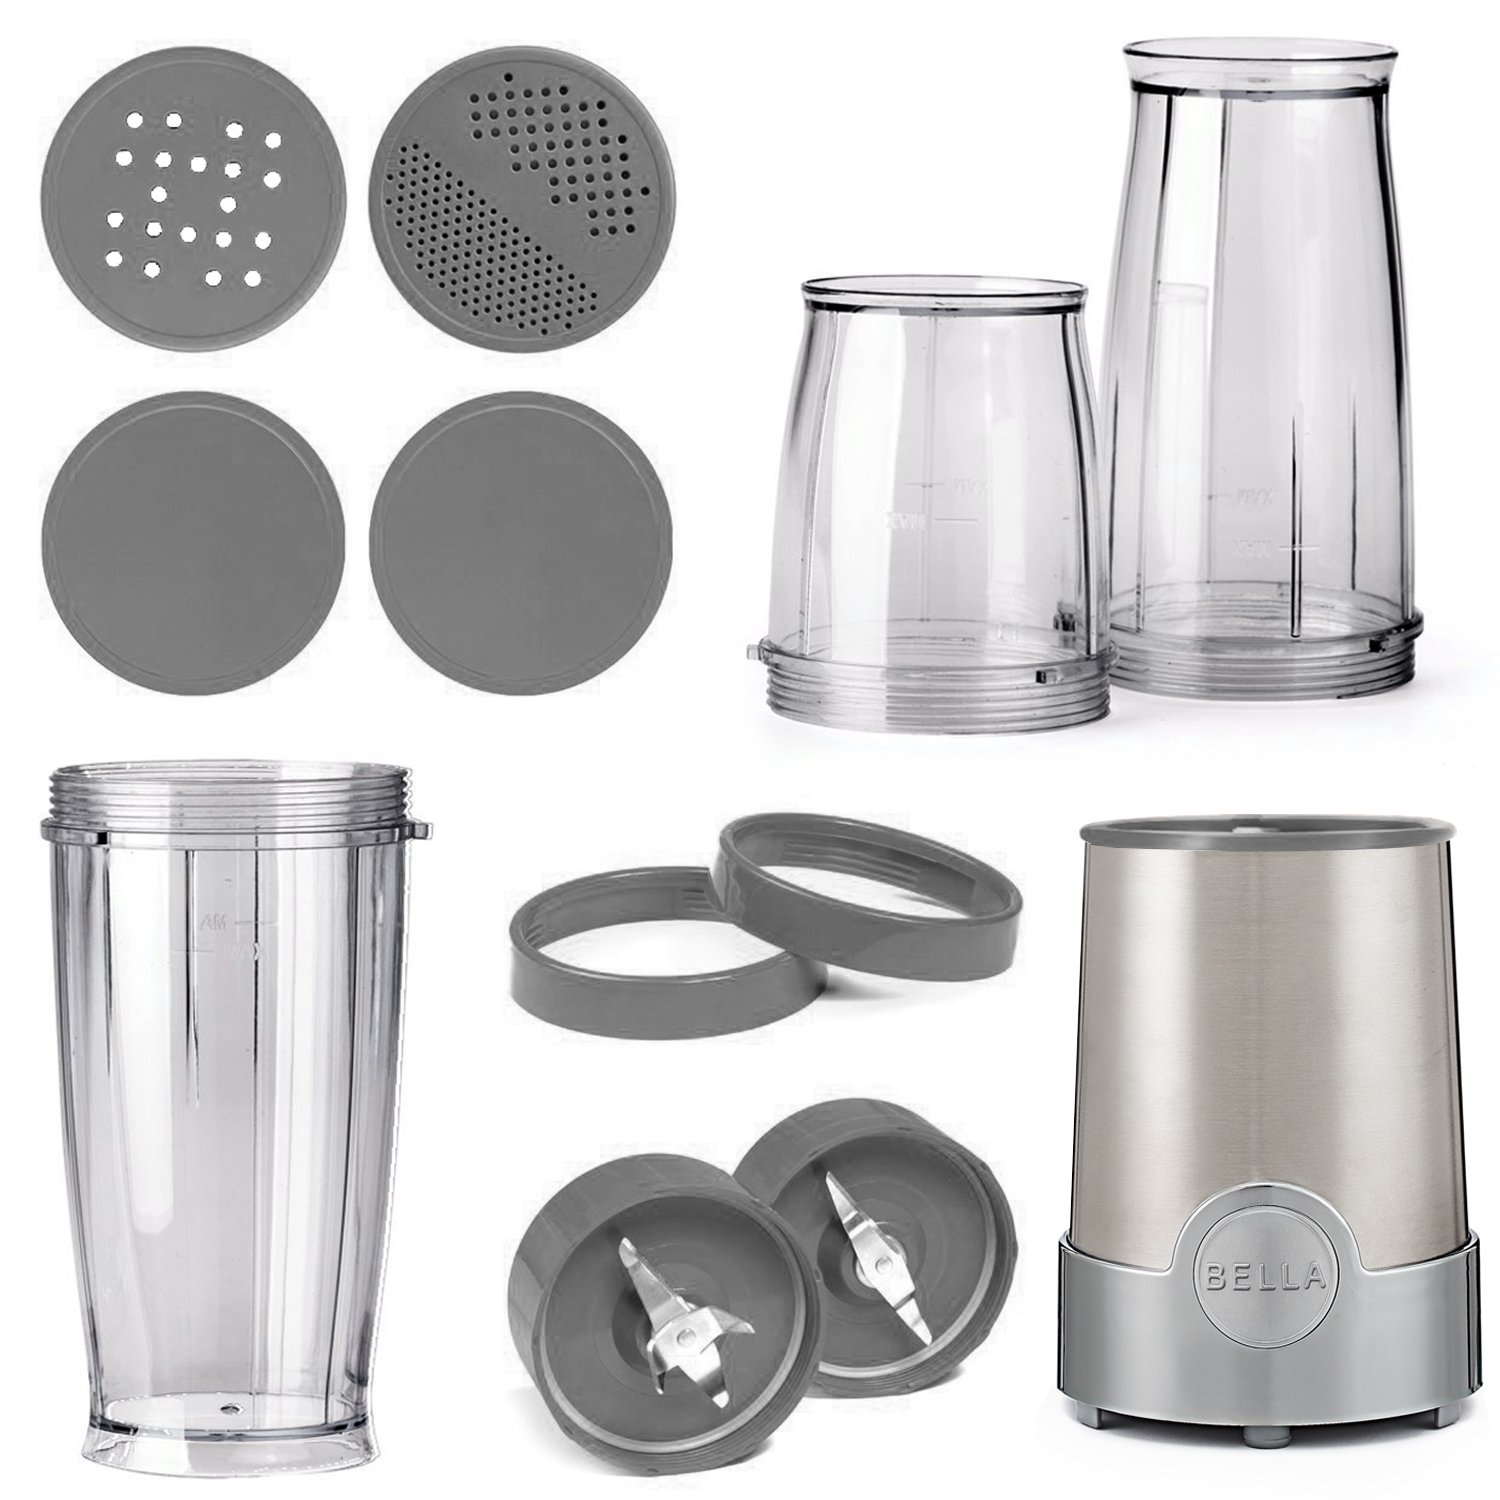 Bella Bla13330 Personal Size Rocket Blender 12 Piece Pics Photos Circuit Board Texture Drinking Glass Jpg Color White Set Stainless Steel And Chrome Electric Blenders Kitchen Dining